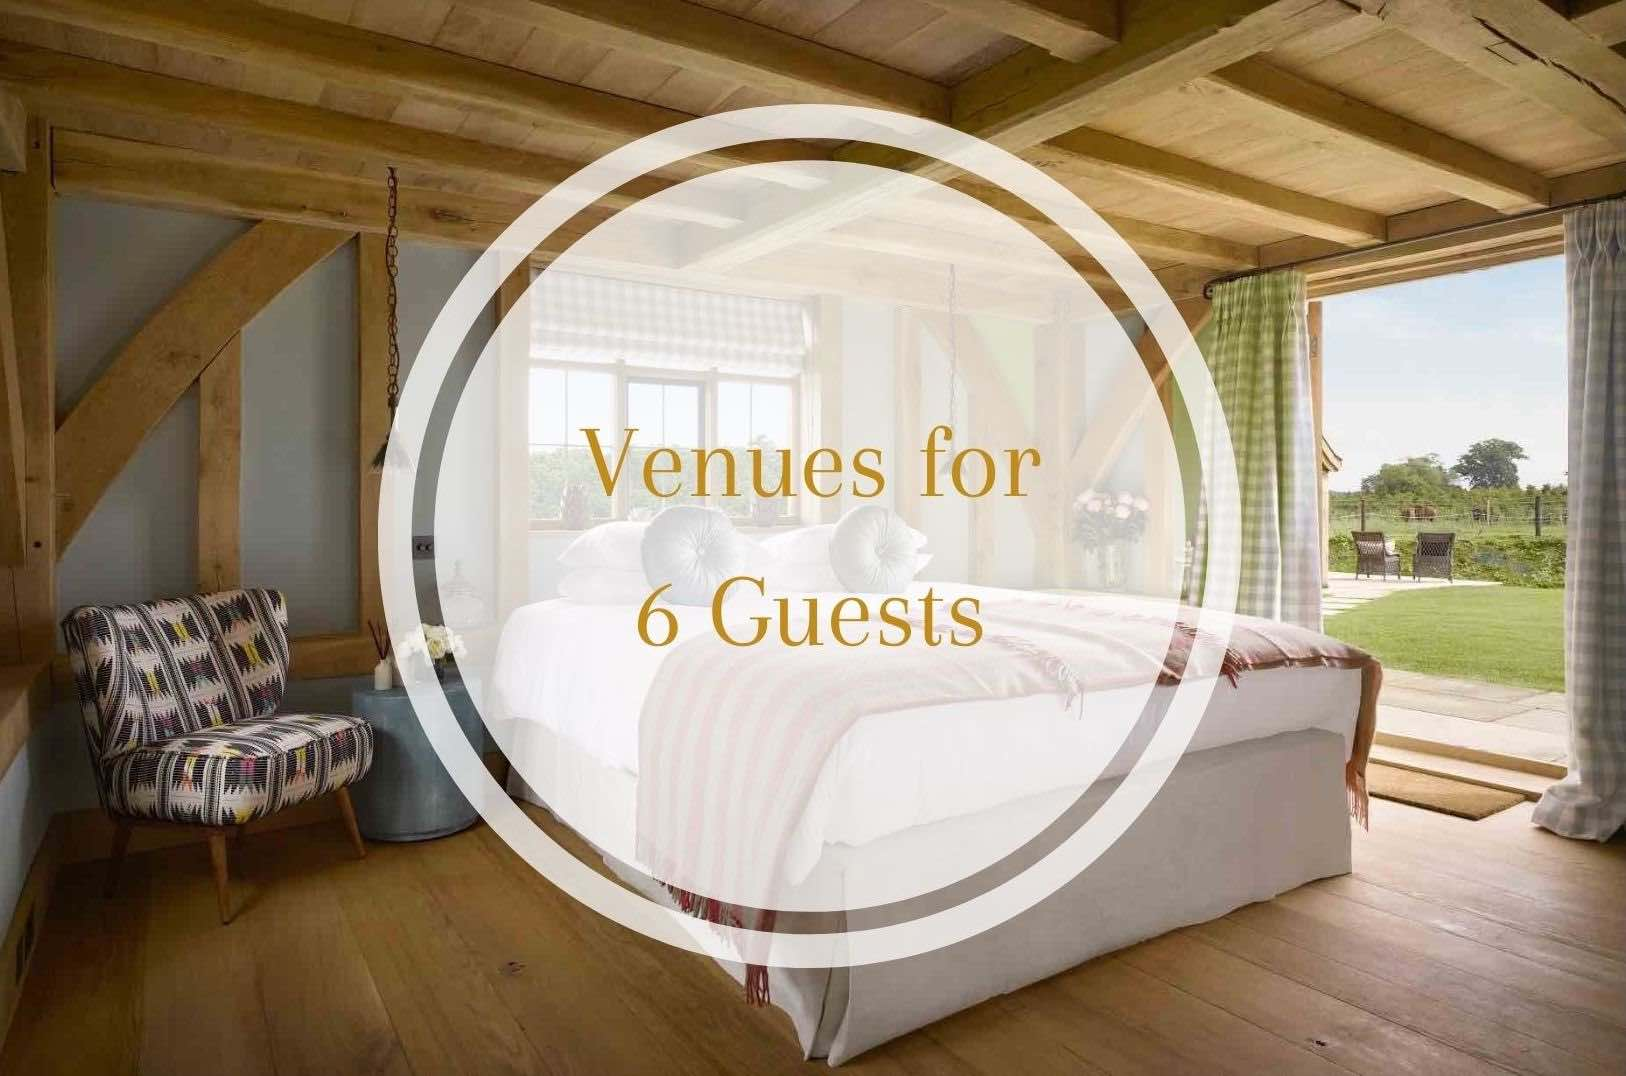 Venues for 6 guests exclusive use